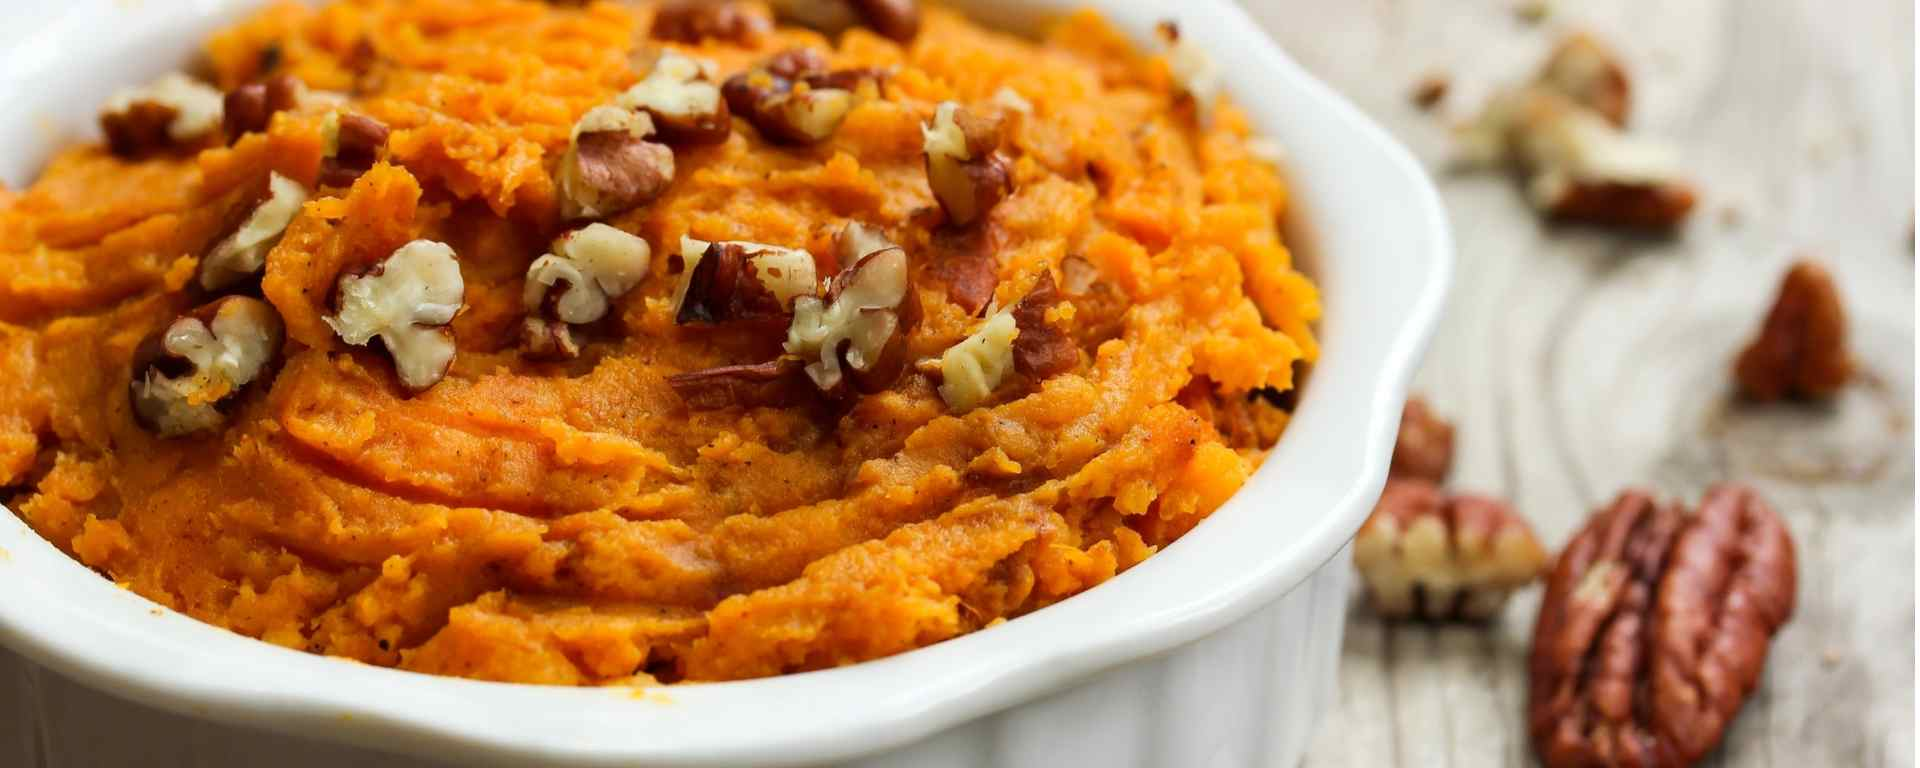 Photo of - Pecan & Parmesan Sweet Potato Bake